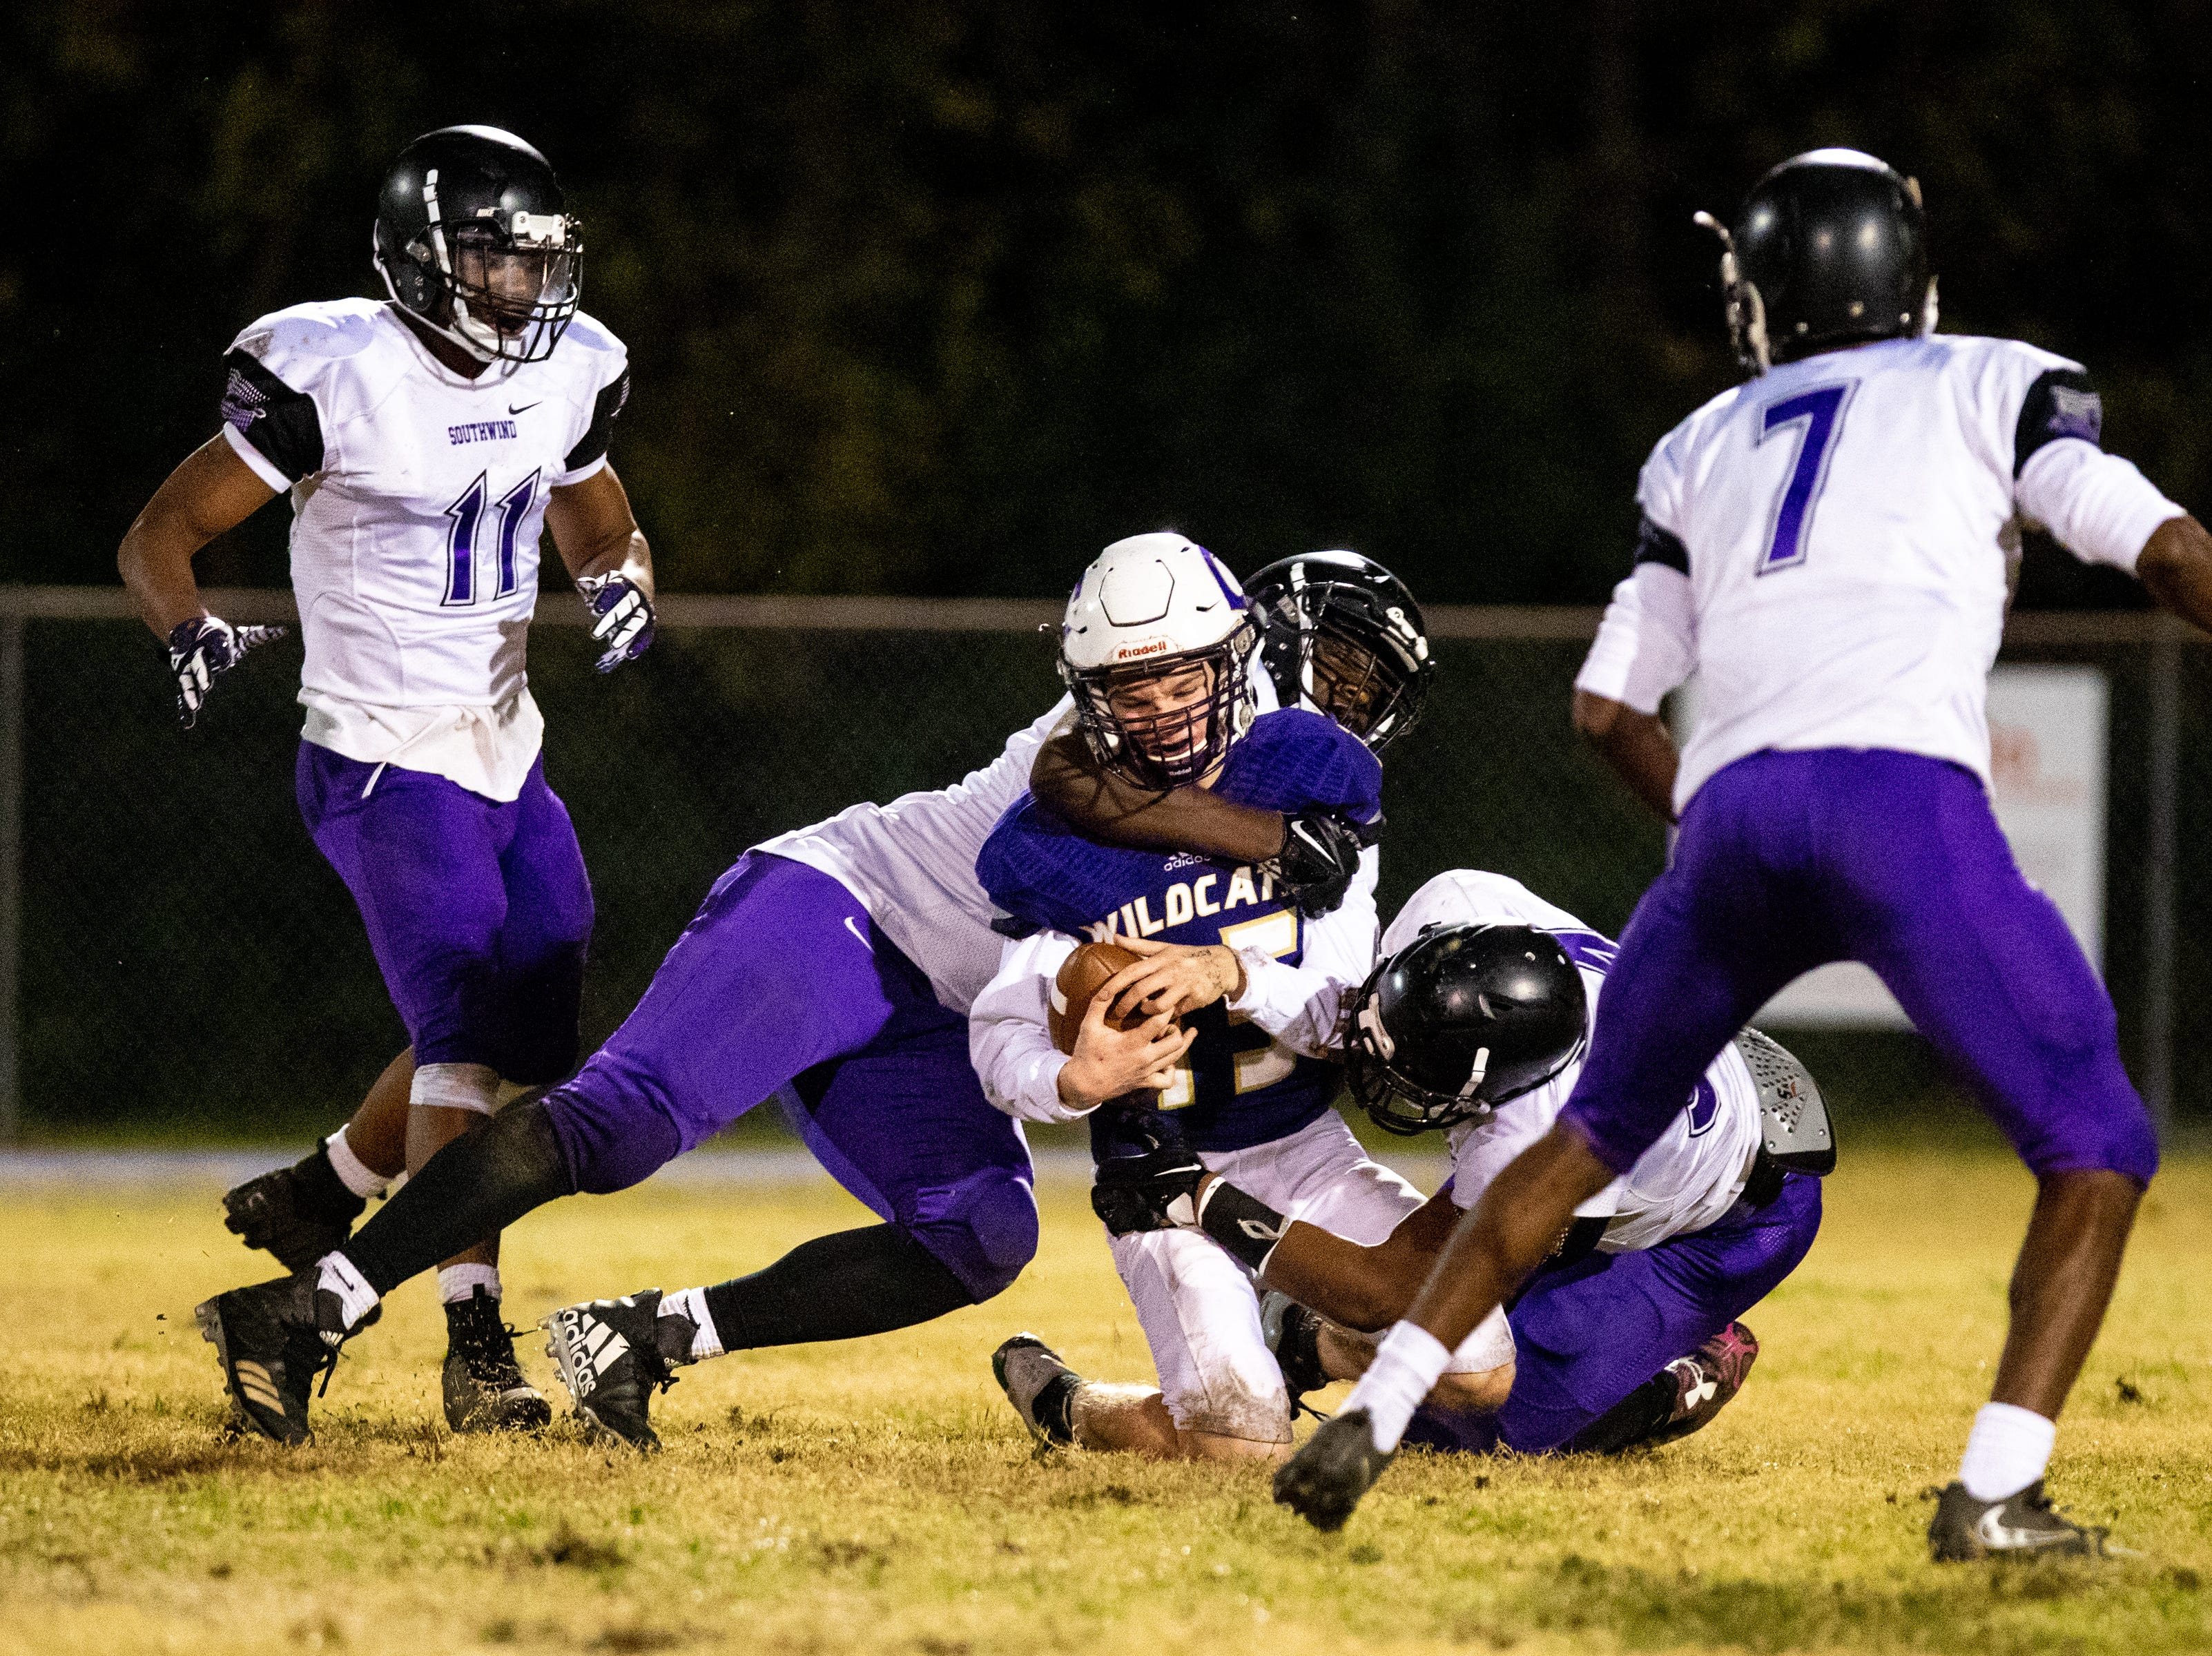 Backup quarterback Colby Cook (15) of Clarksville High is sacked during the first half at Clarksville High Friday, Nov. 2, 2018, in Clarksville, Tenn.